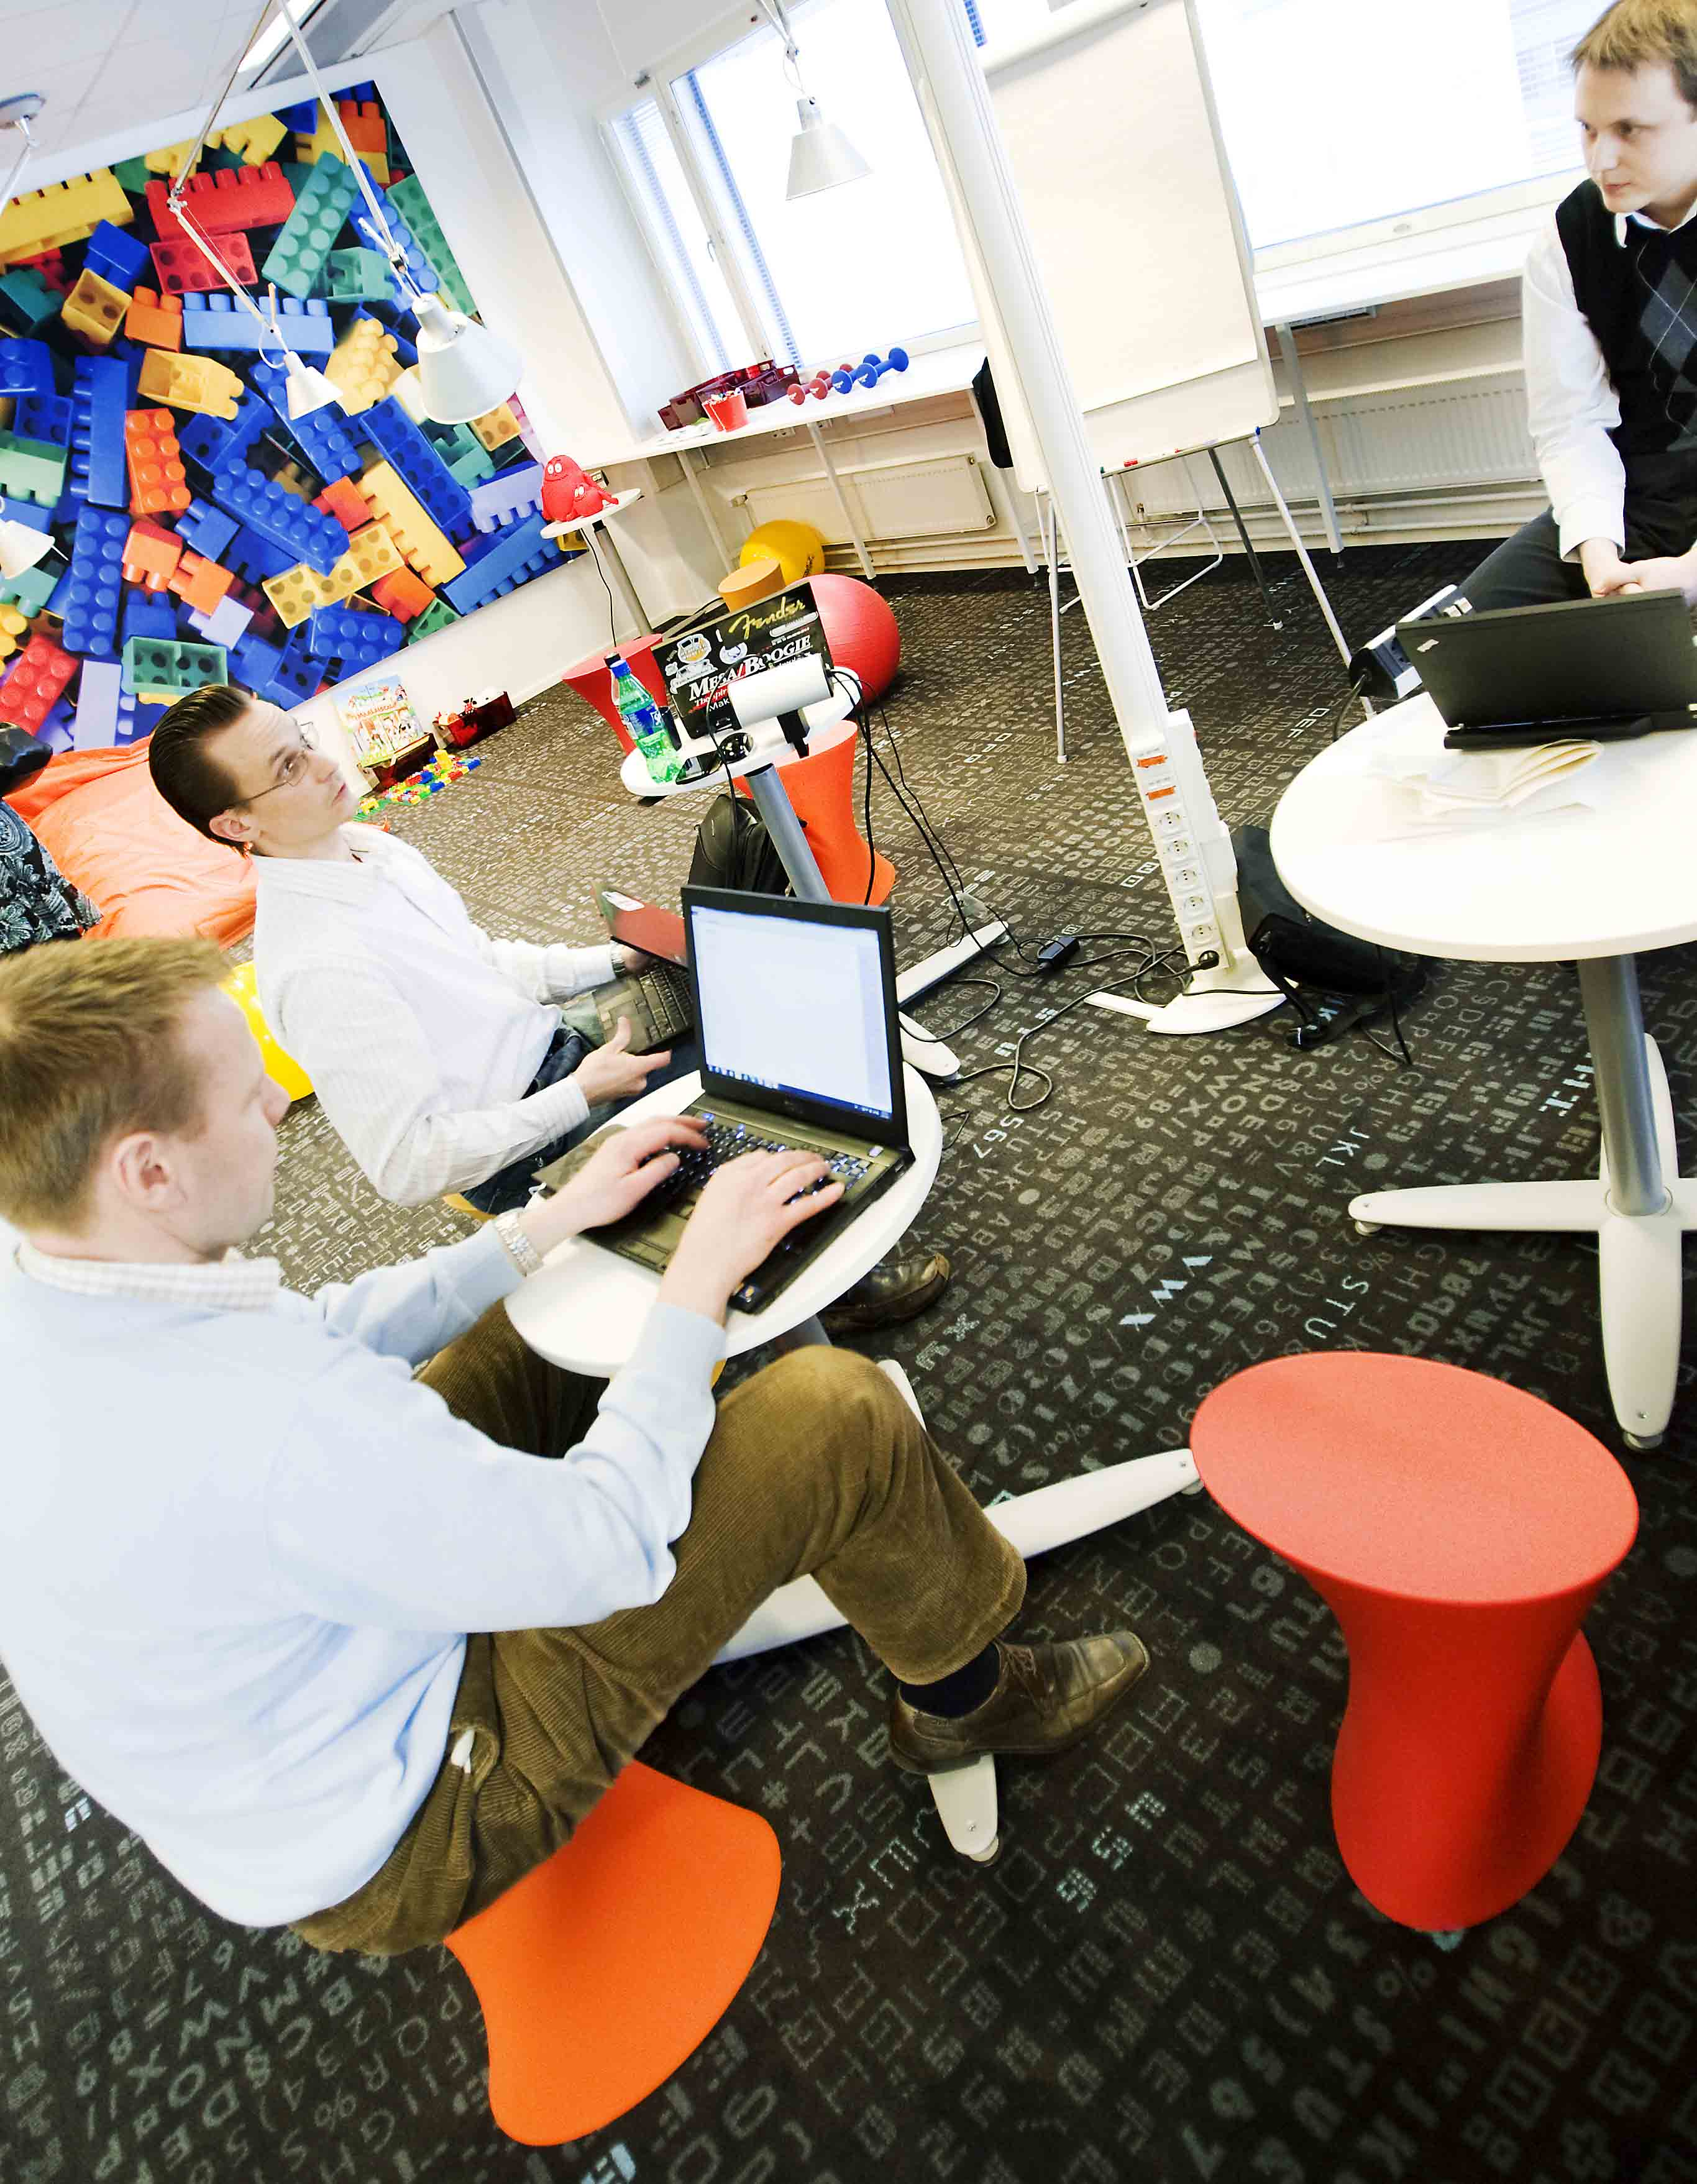 The right use of space improves office work